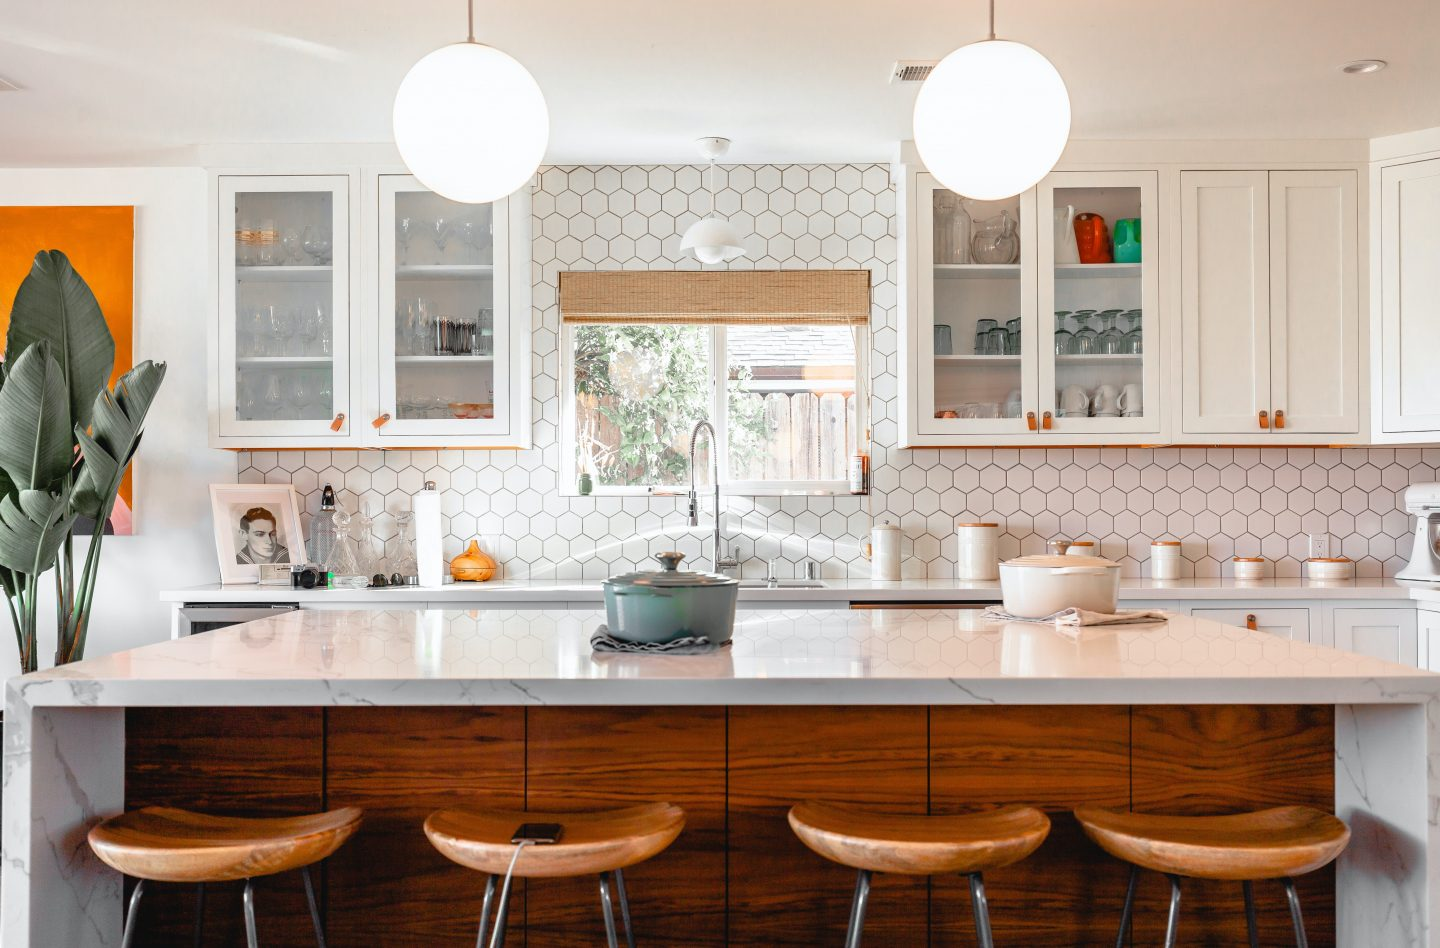 How to refresh your home and kitchen